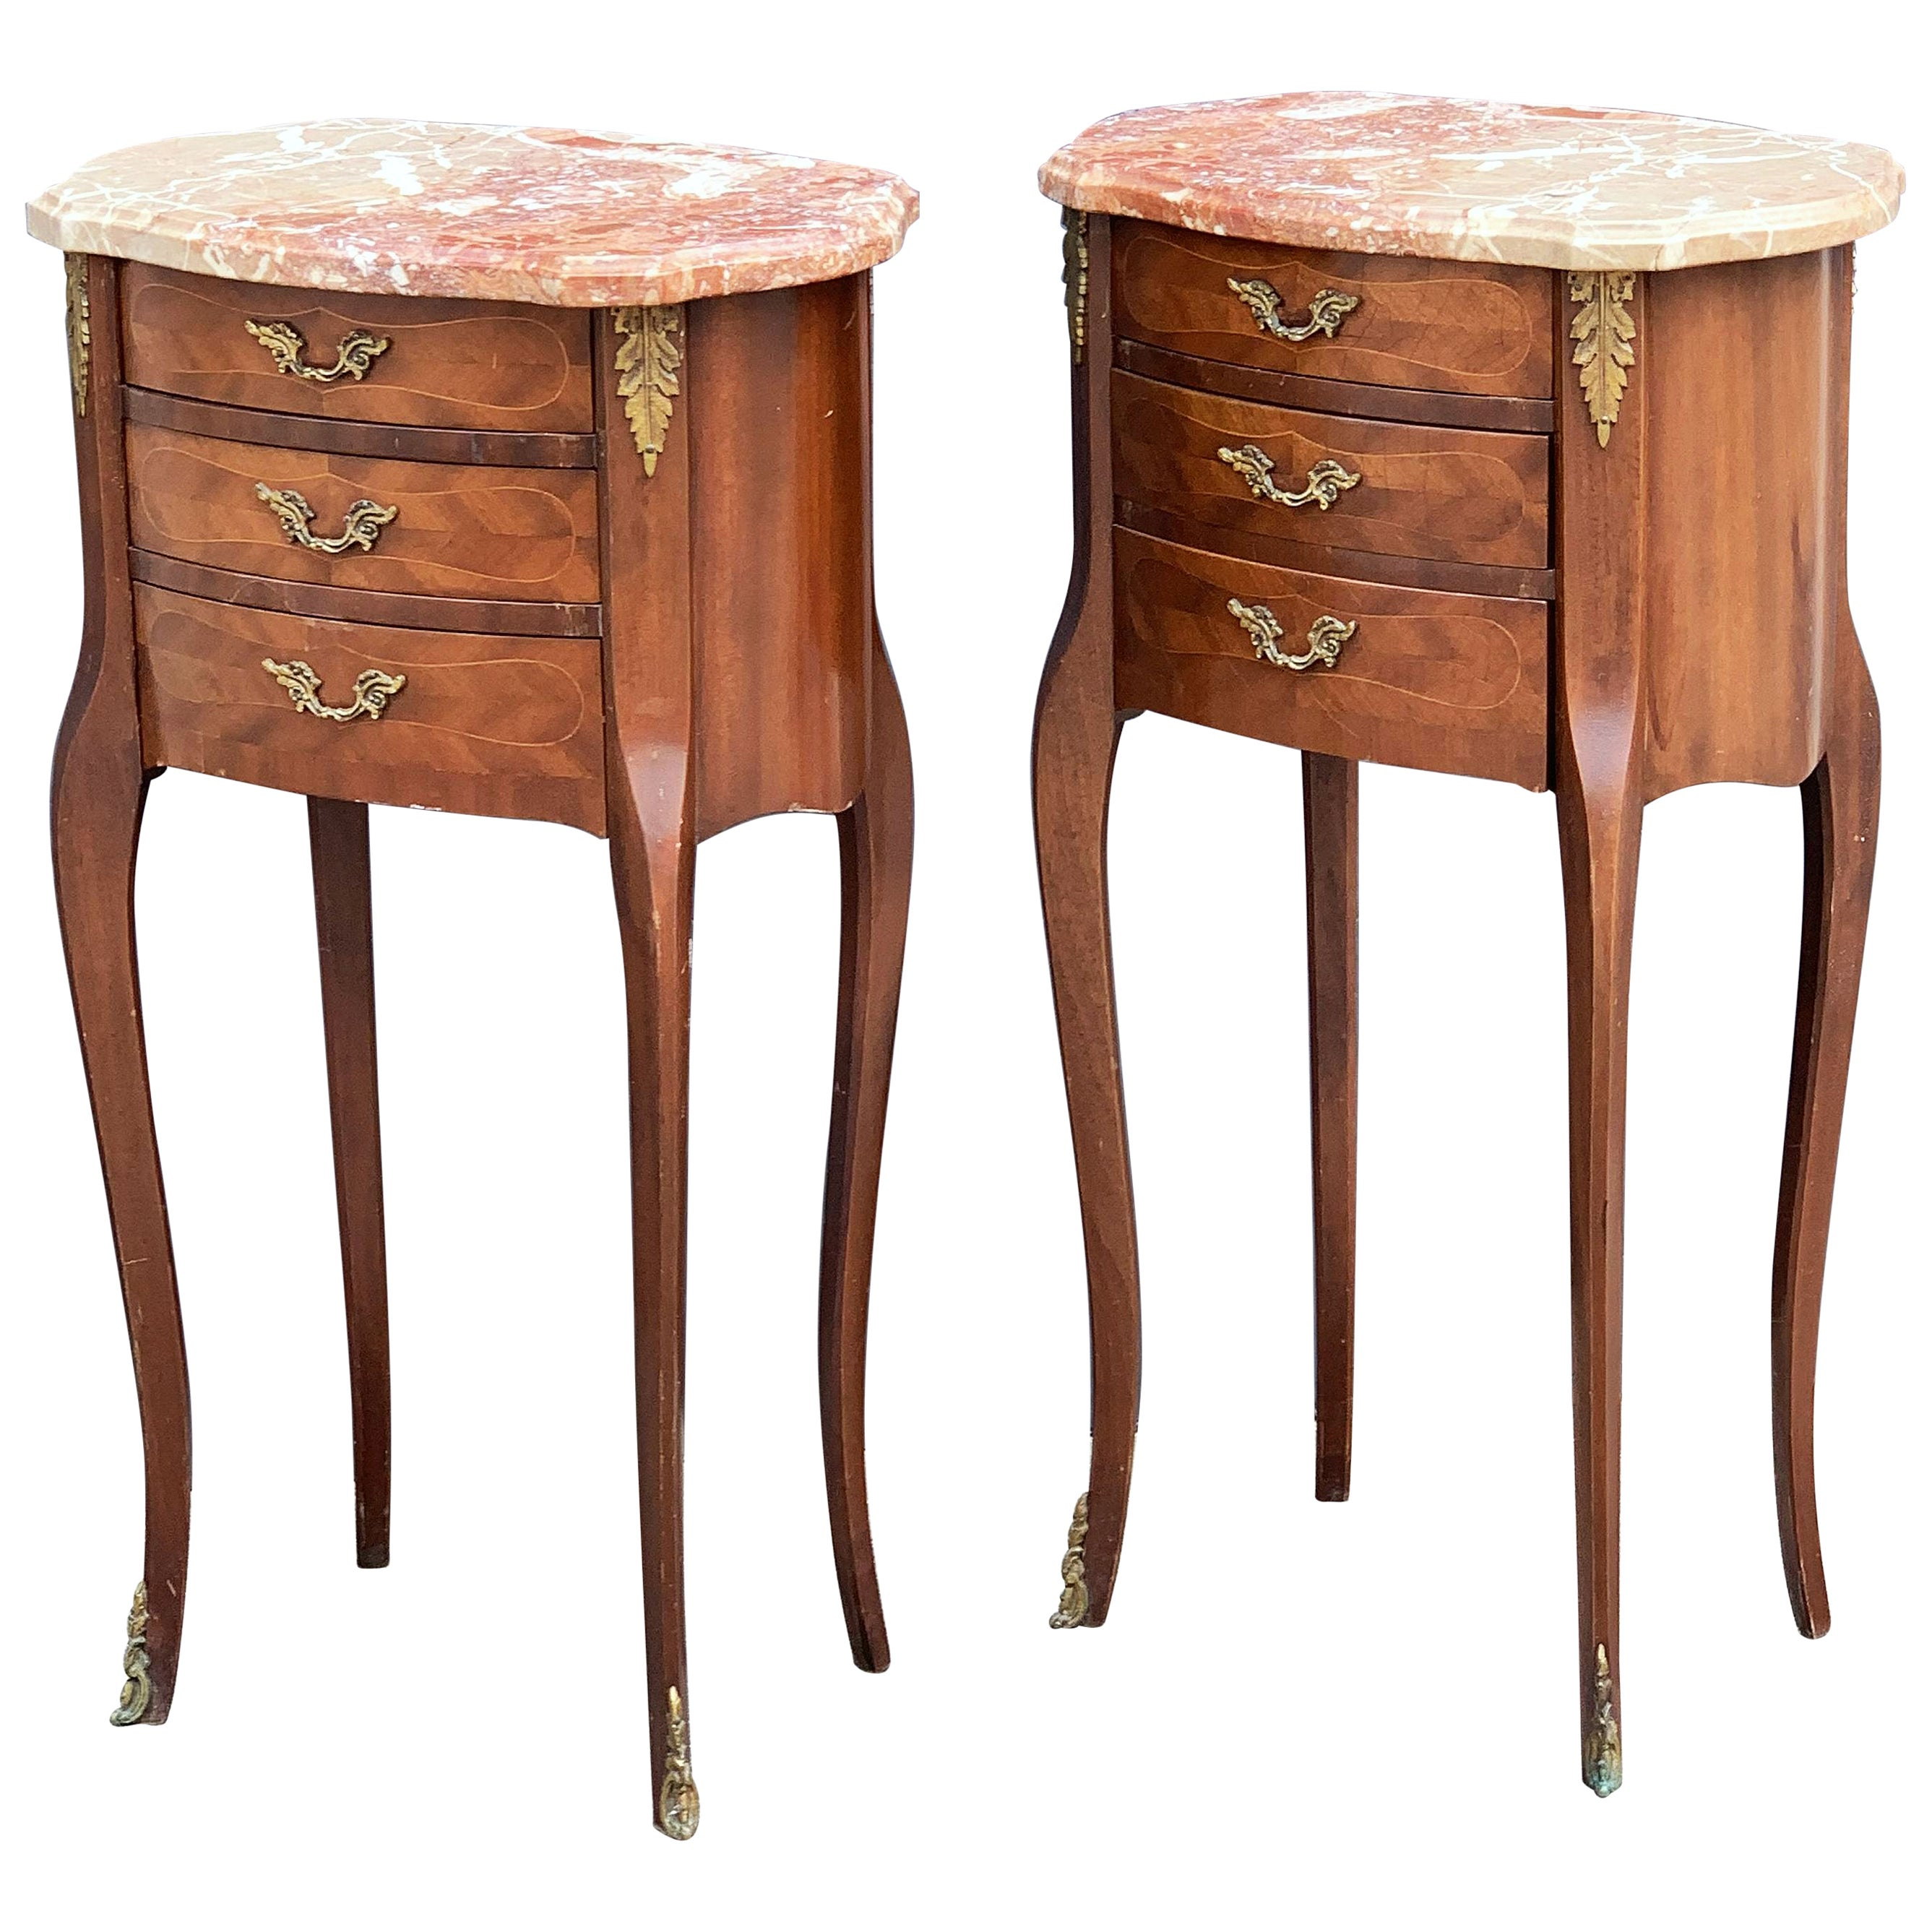 French Inlaid Nightstands or Bedside Tables - 'Individually Priced'